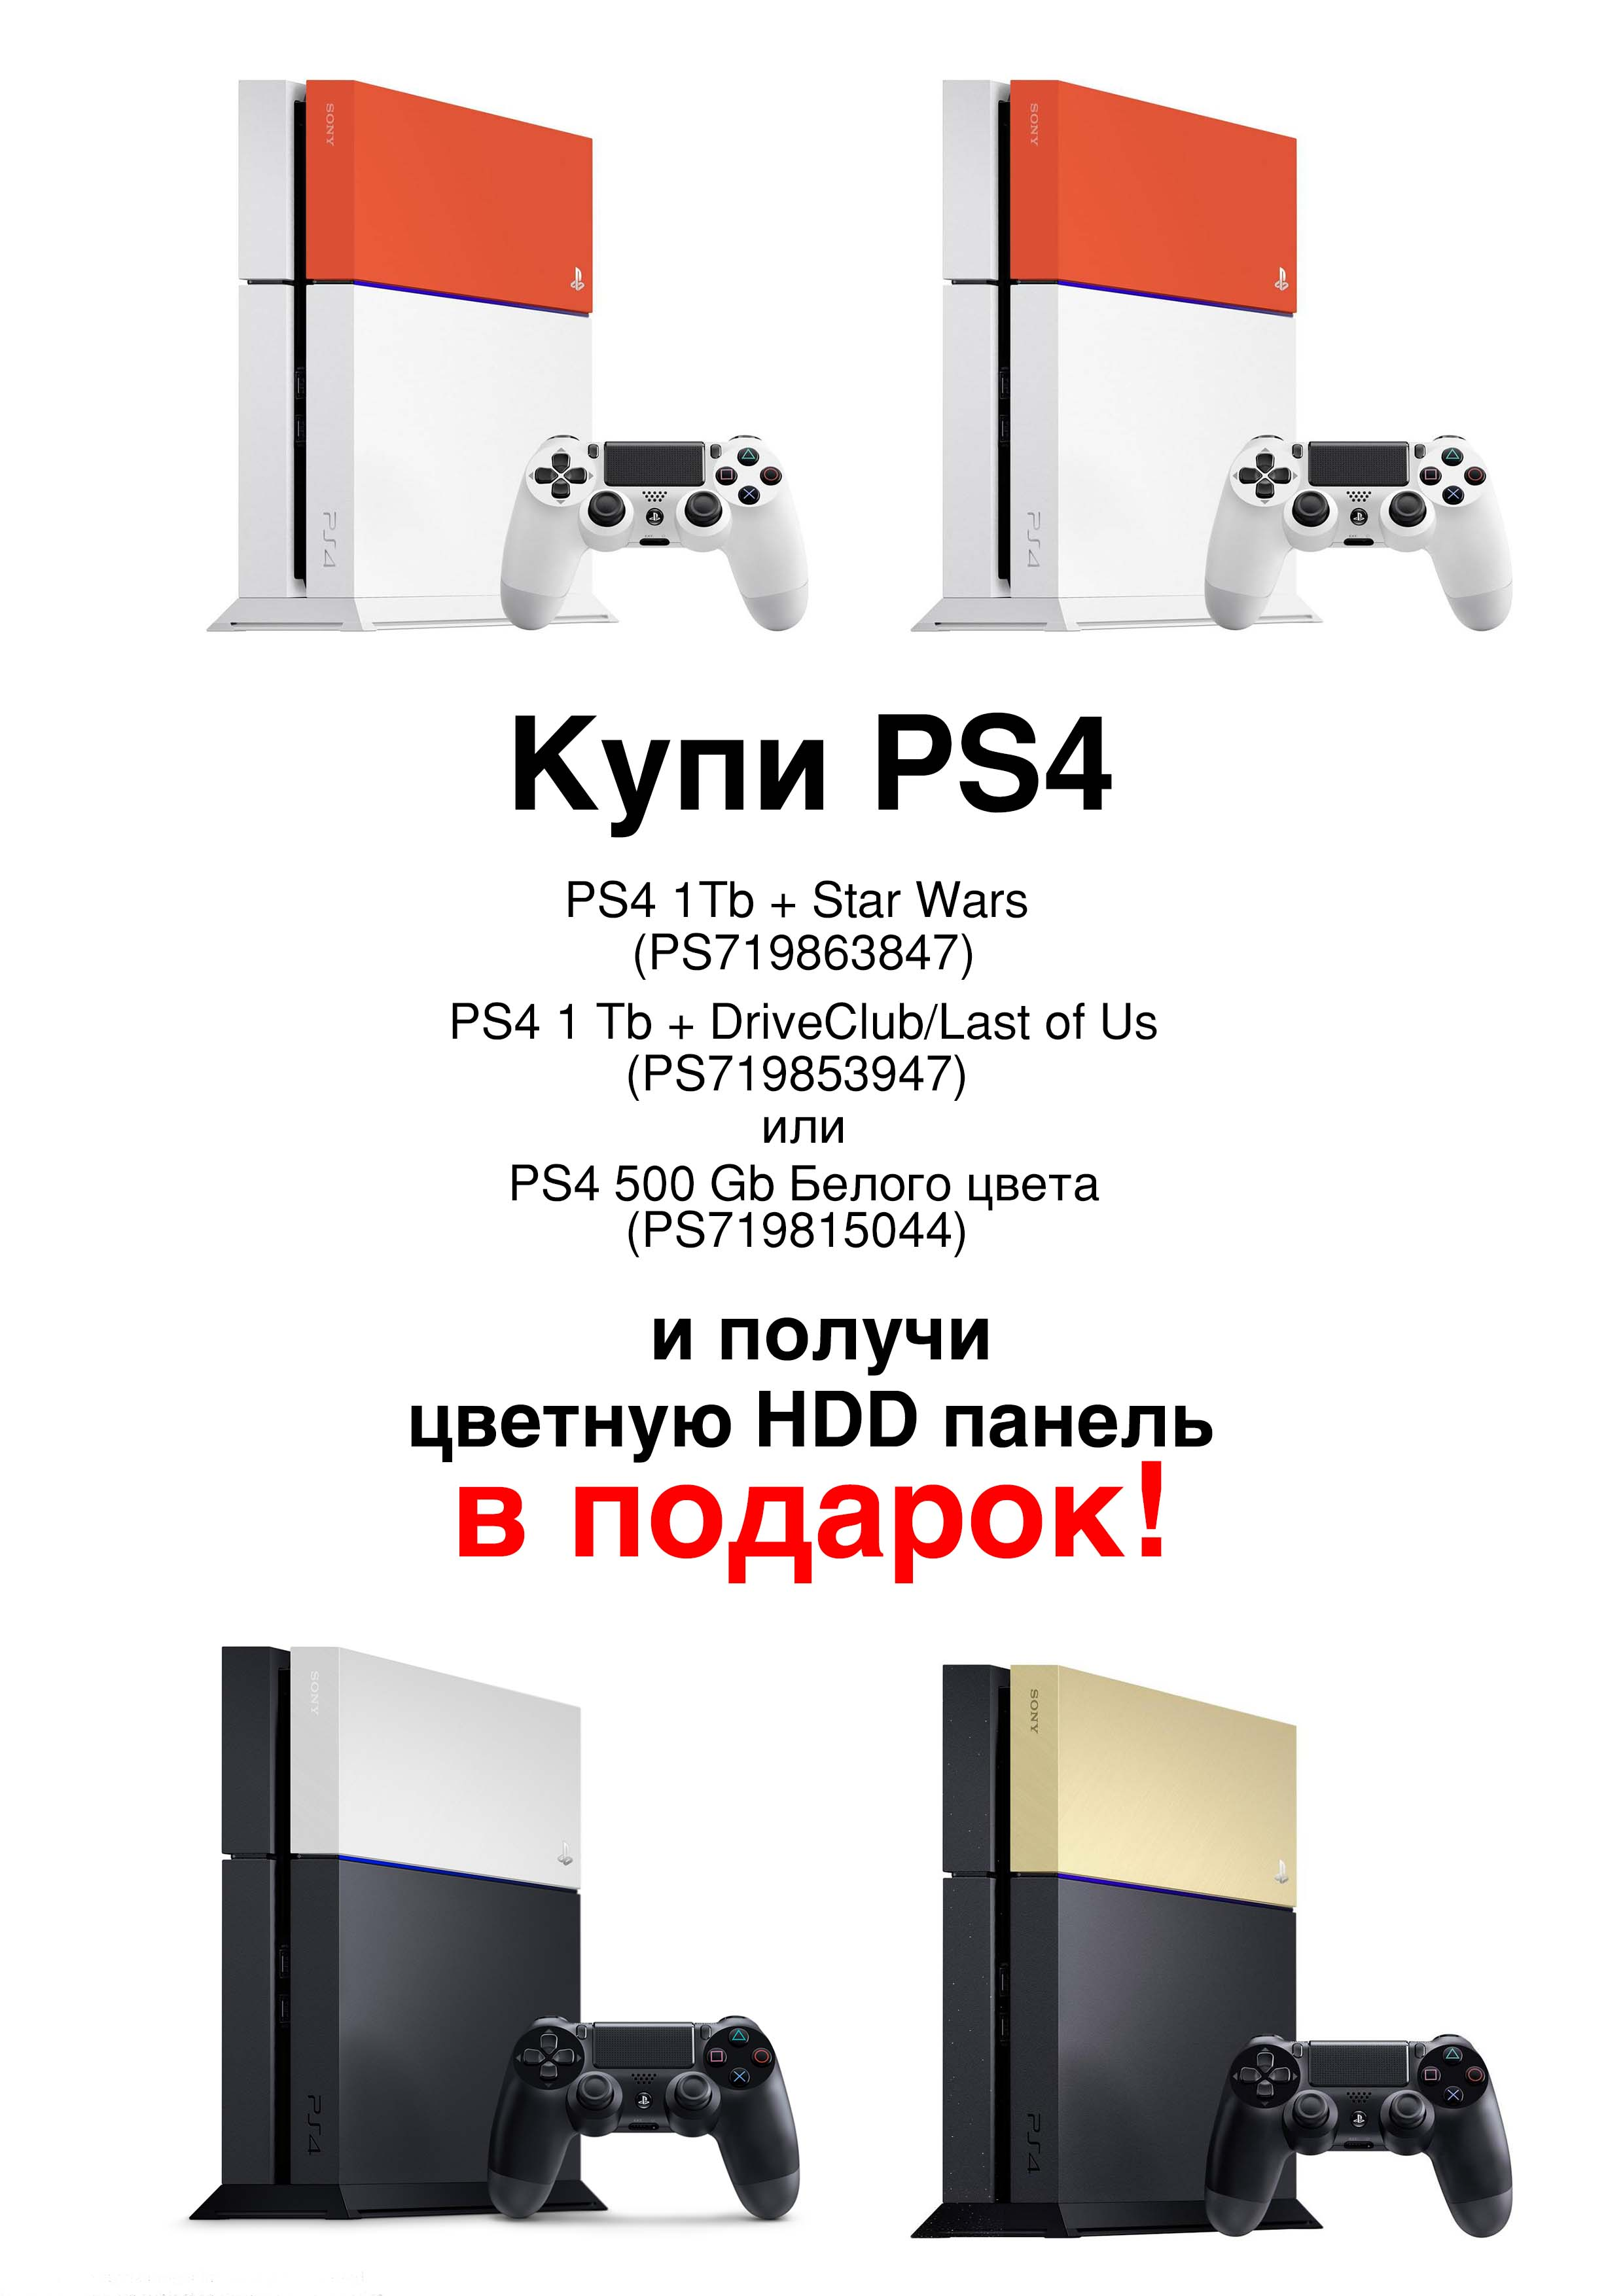 PS4+HDD